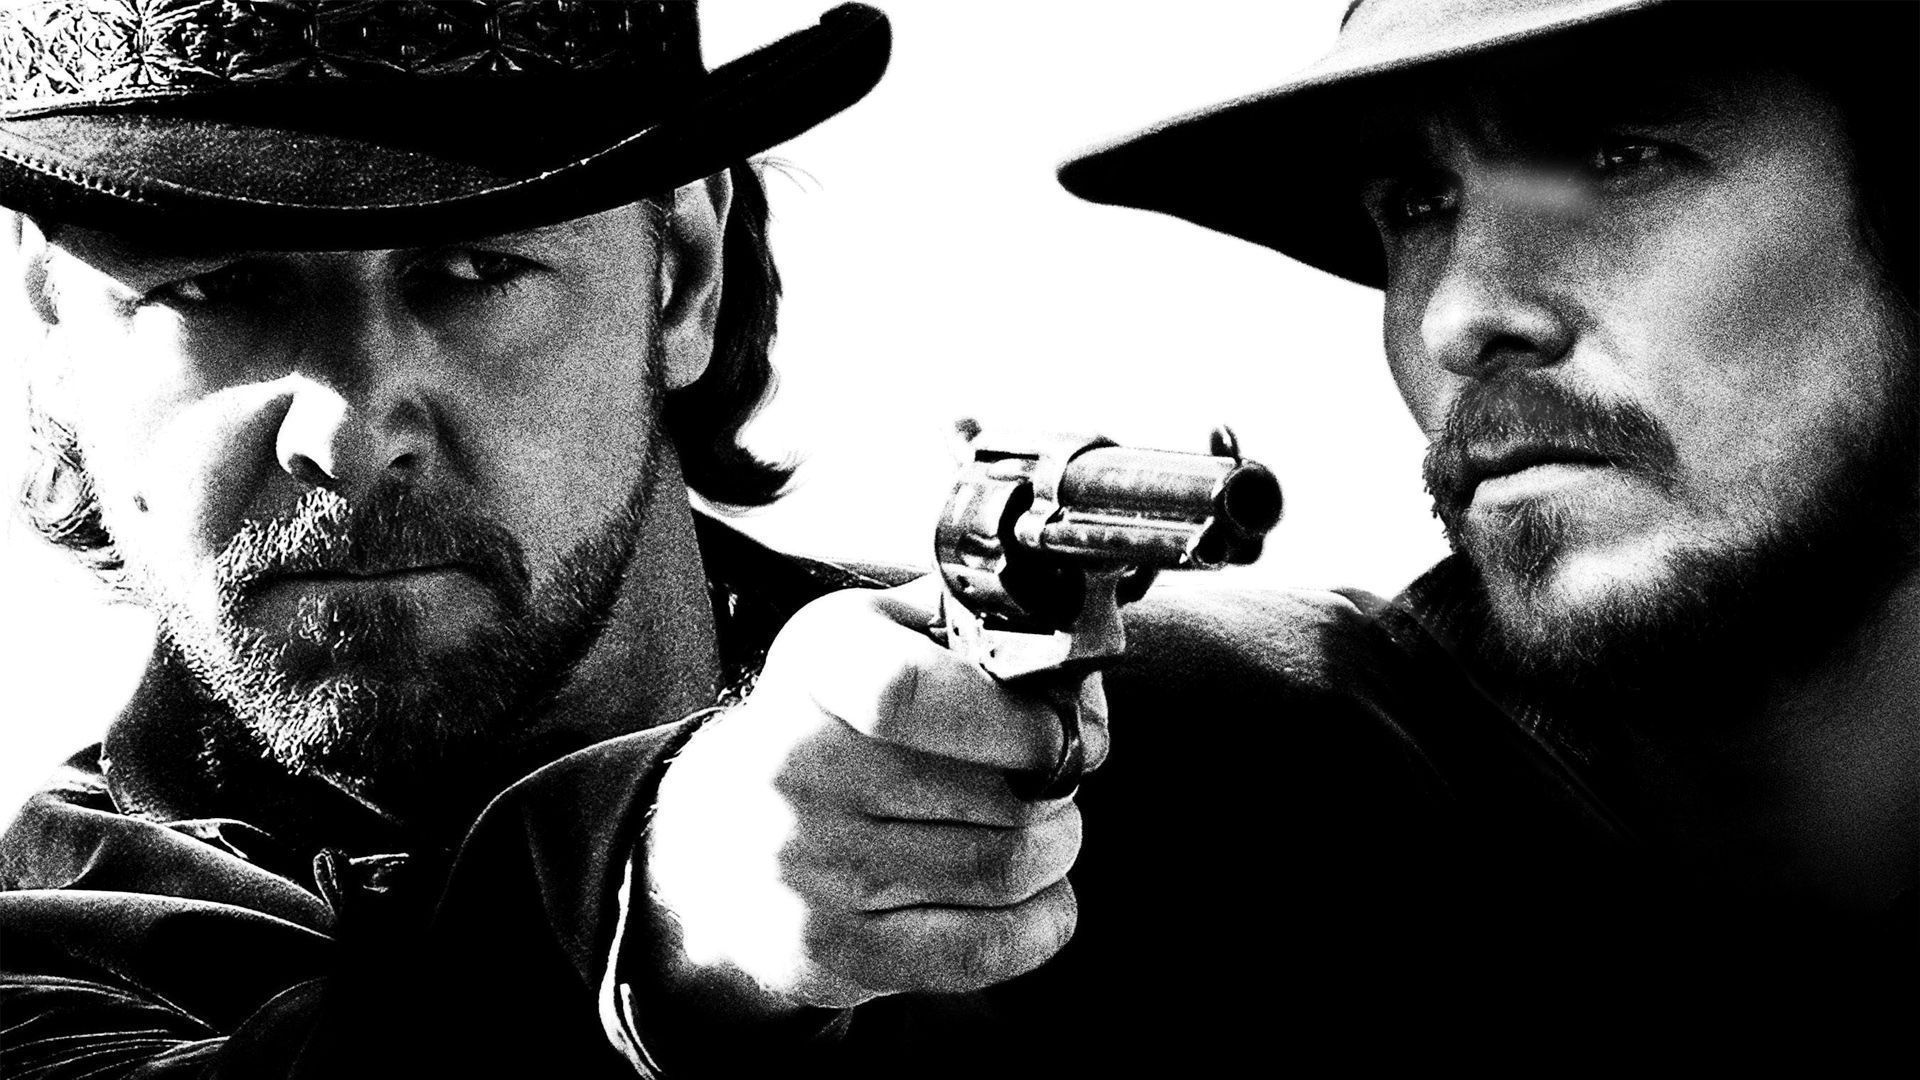 310 To Yuma Images